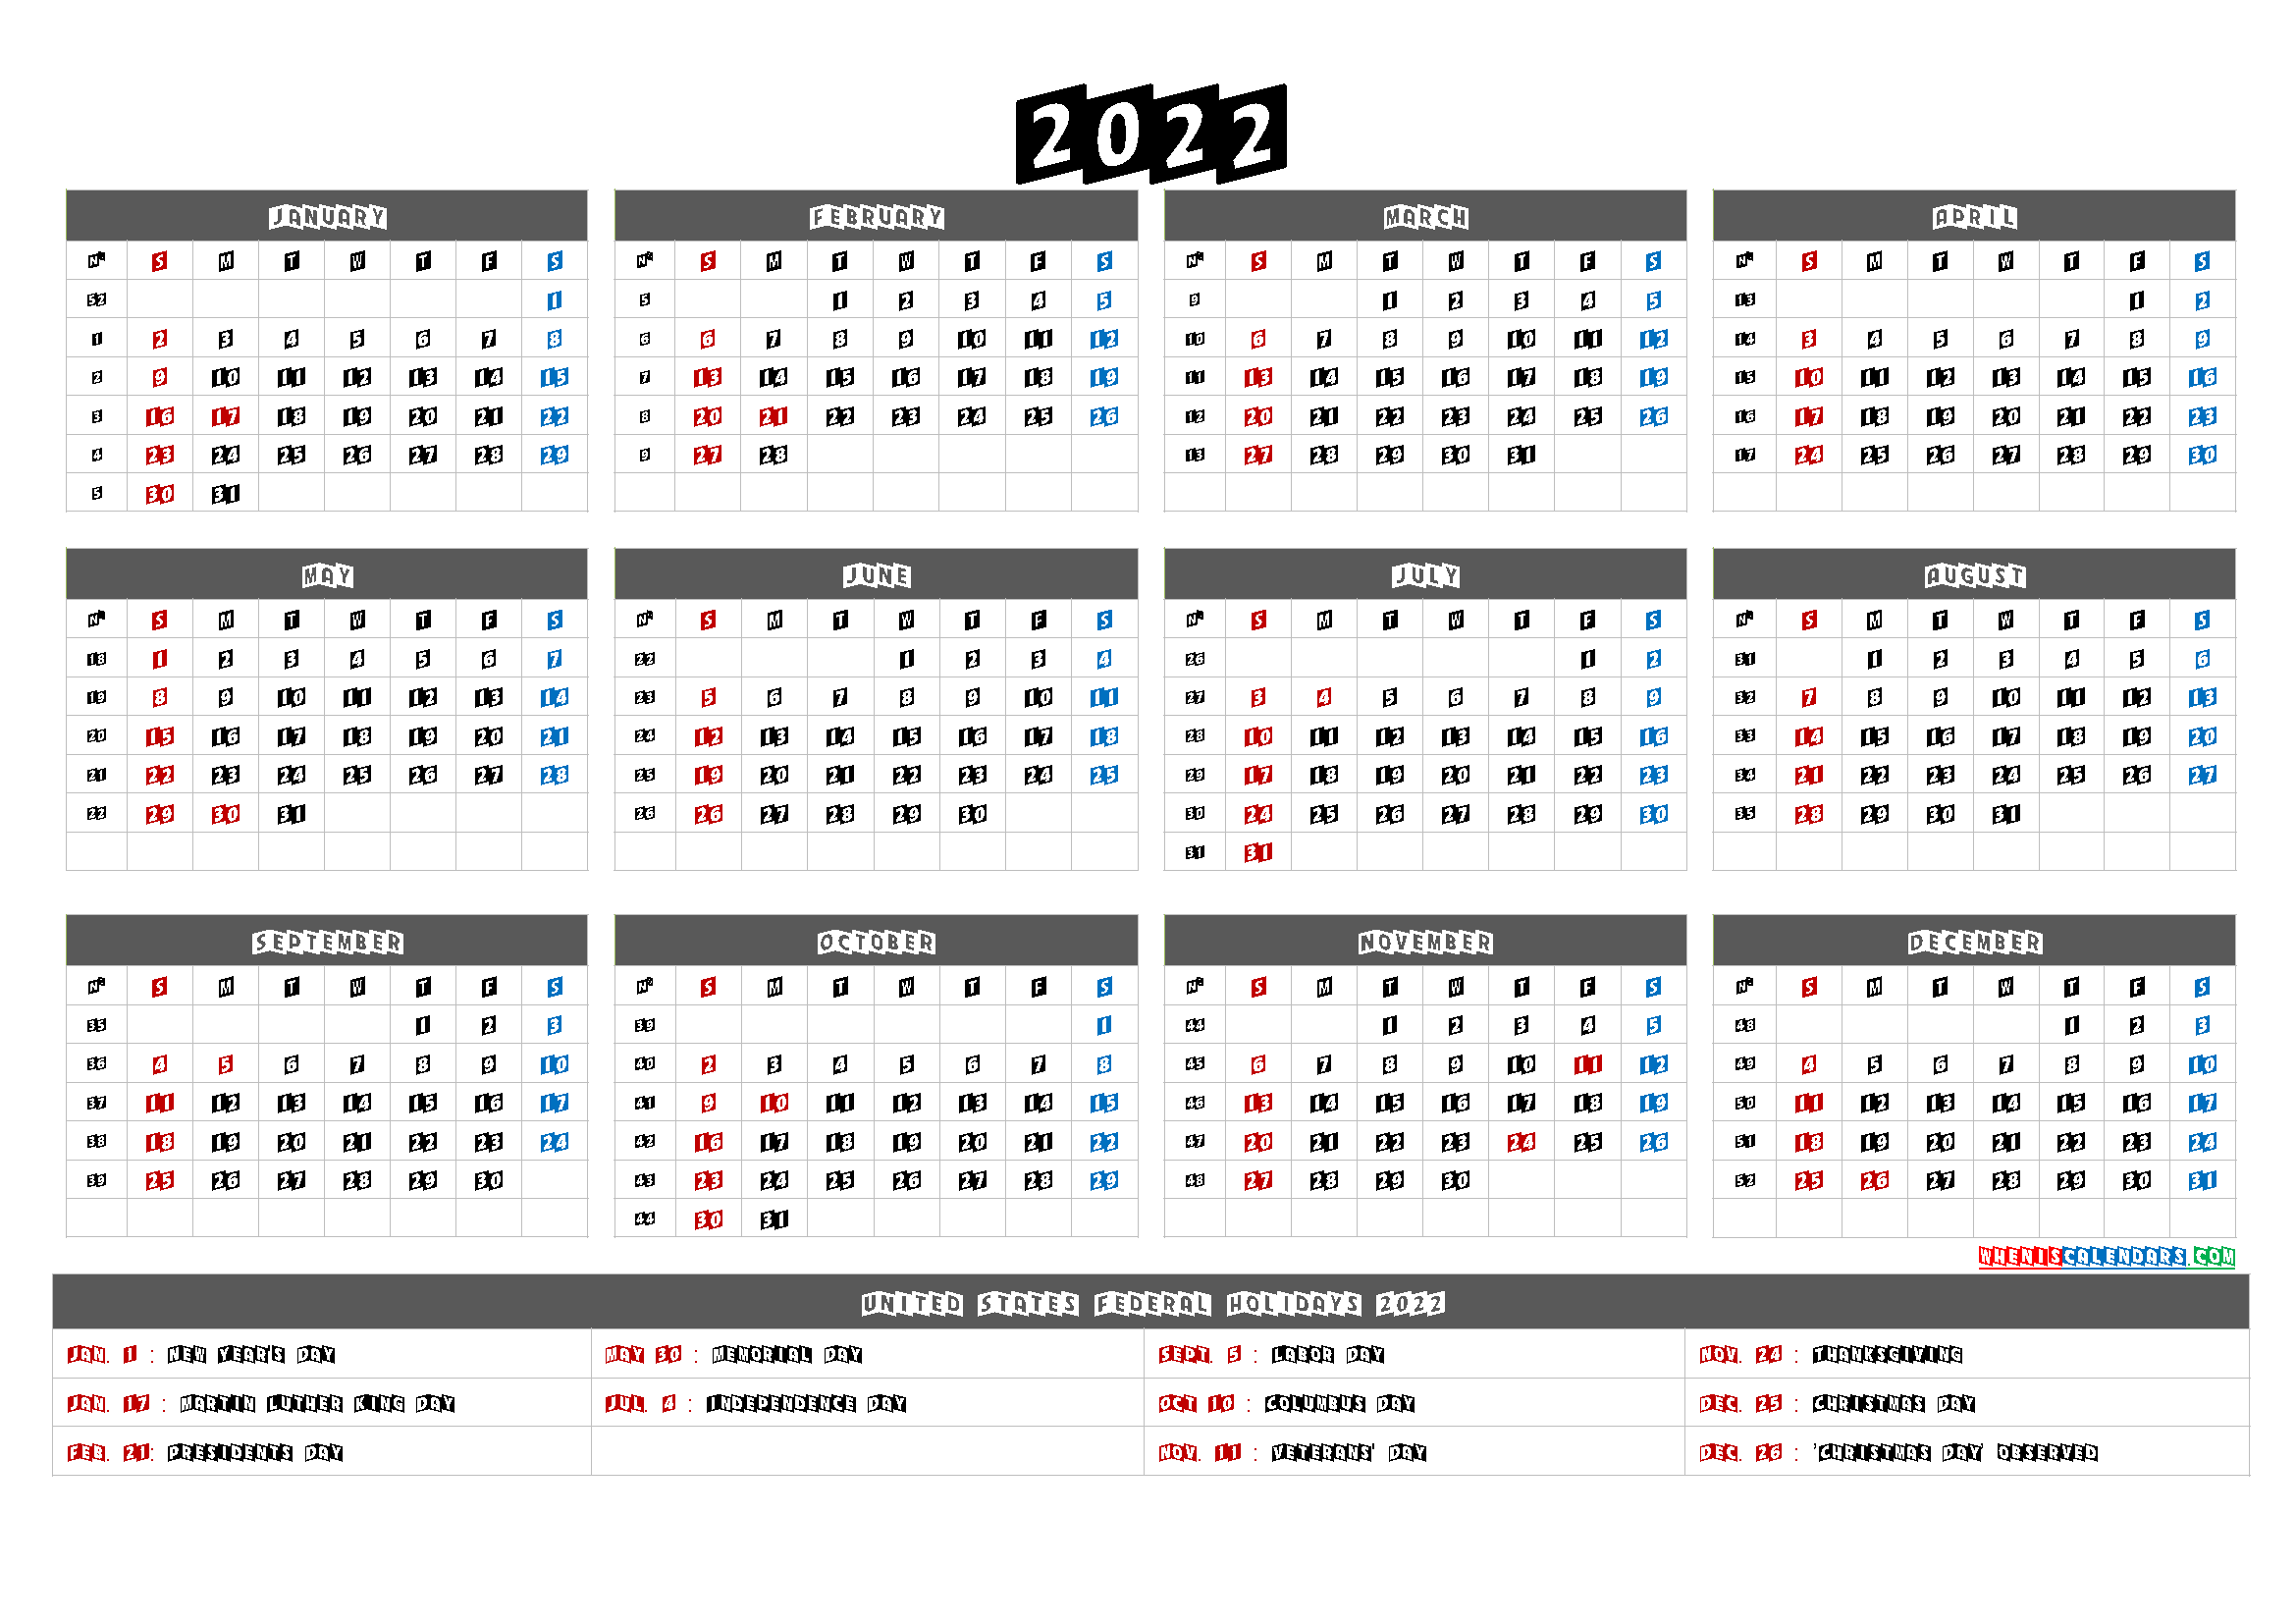 2022 Calendar Printable One Page 6 Templates In 2020 Free Printable Calendar Templates Calendar Printables Calendar Template